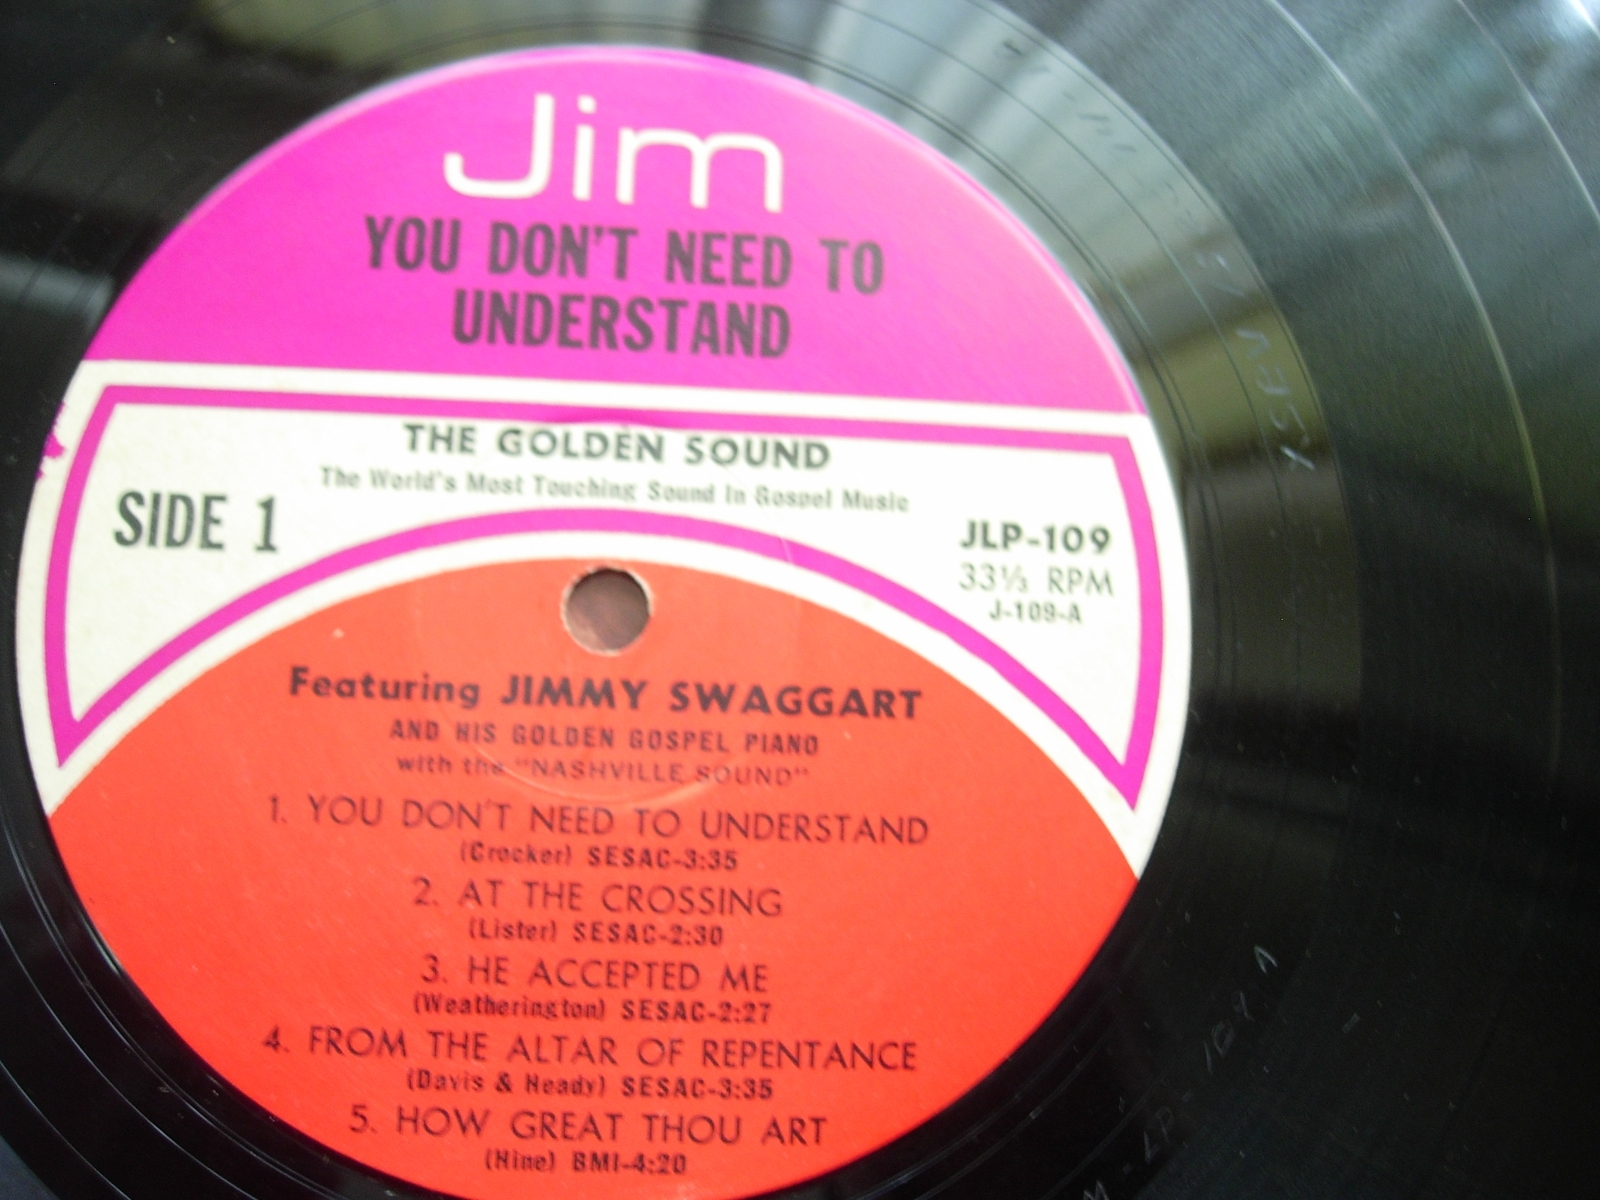 Jimmy Swaggart - You Don't Need to Understand - Jim Records LP 109